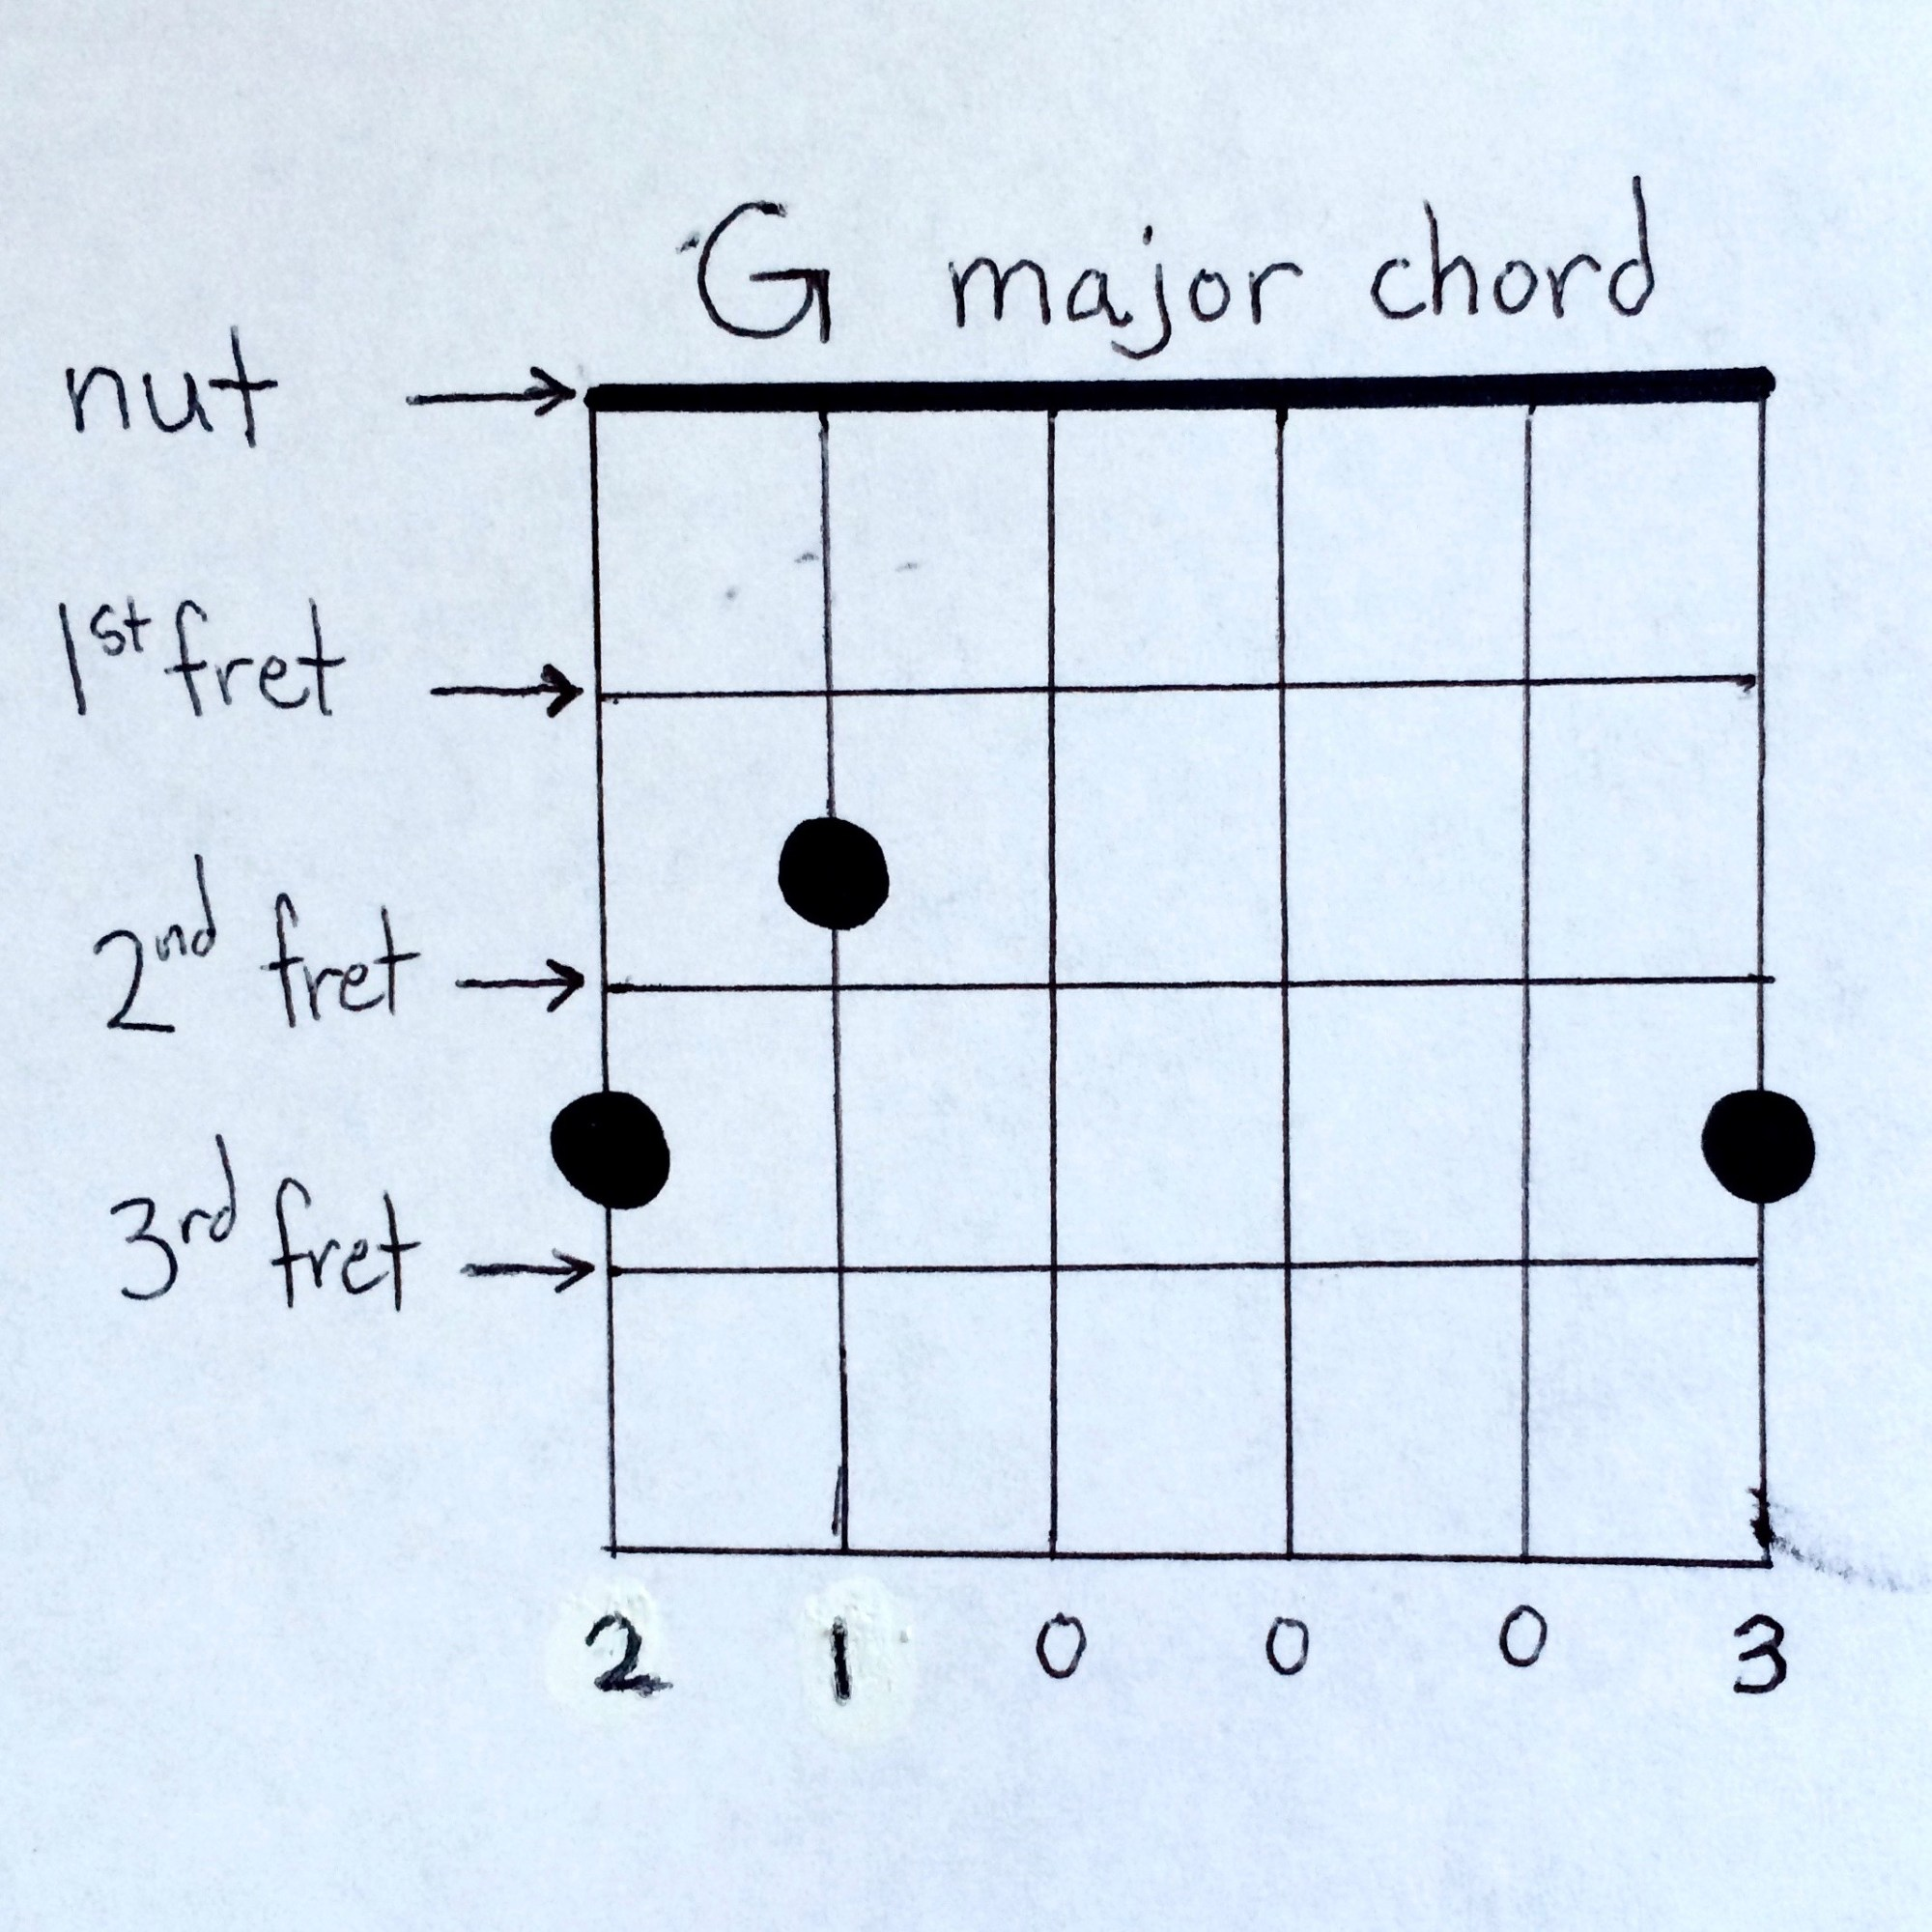 hight resolution of easy guitar chords 1 g major chord diagram